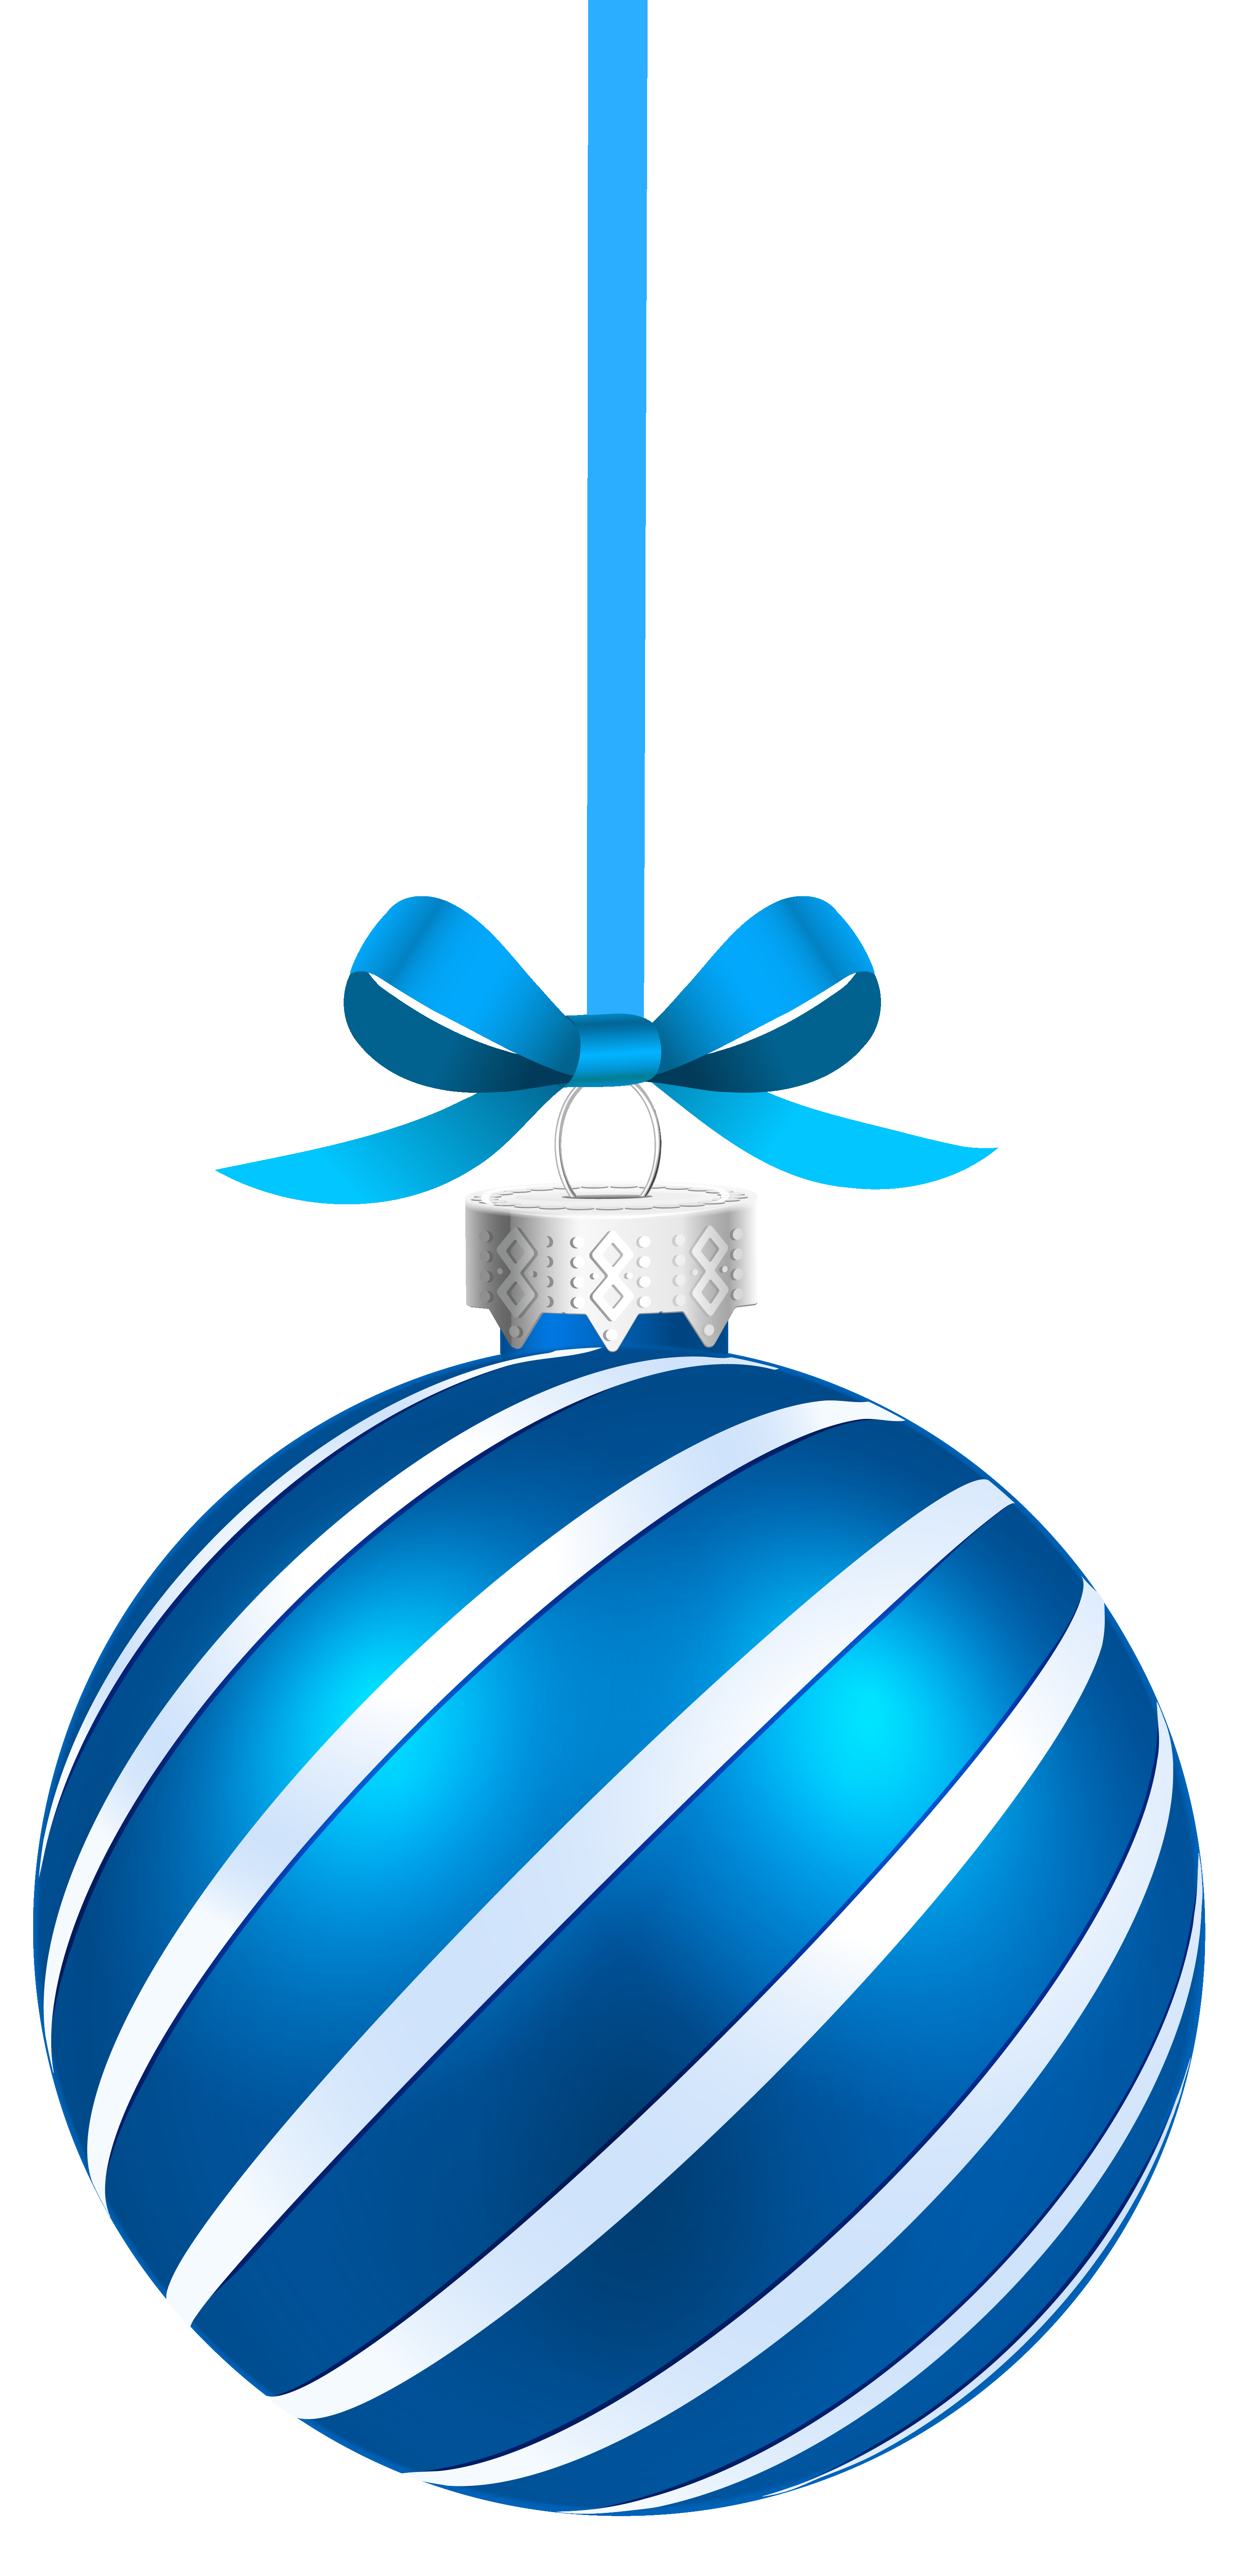 Blue Sriped Christmas Hanging Ball Png Clipart Image Gallery Yopriceville High Free Christmas Backgrounds Christmas Applique Designs Christmas Card Crafts